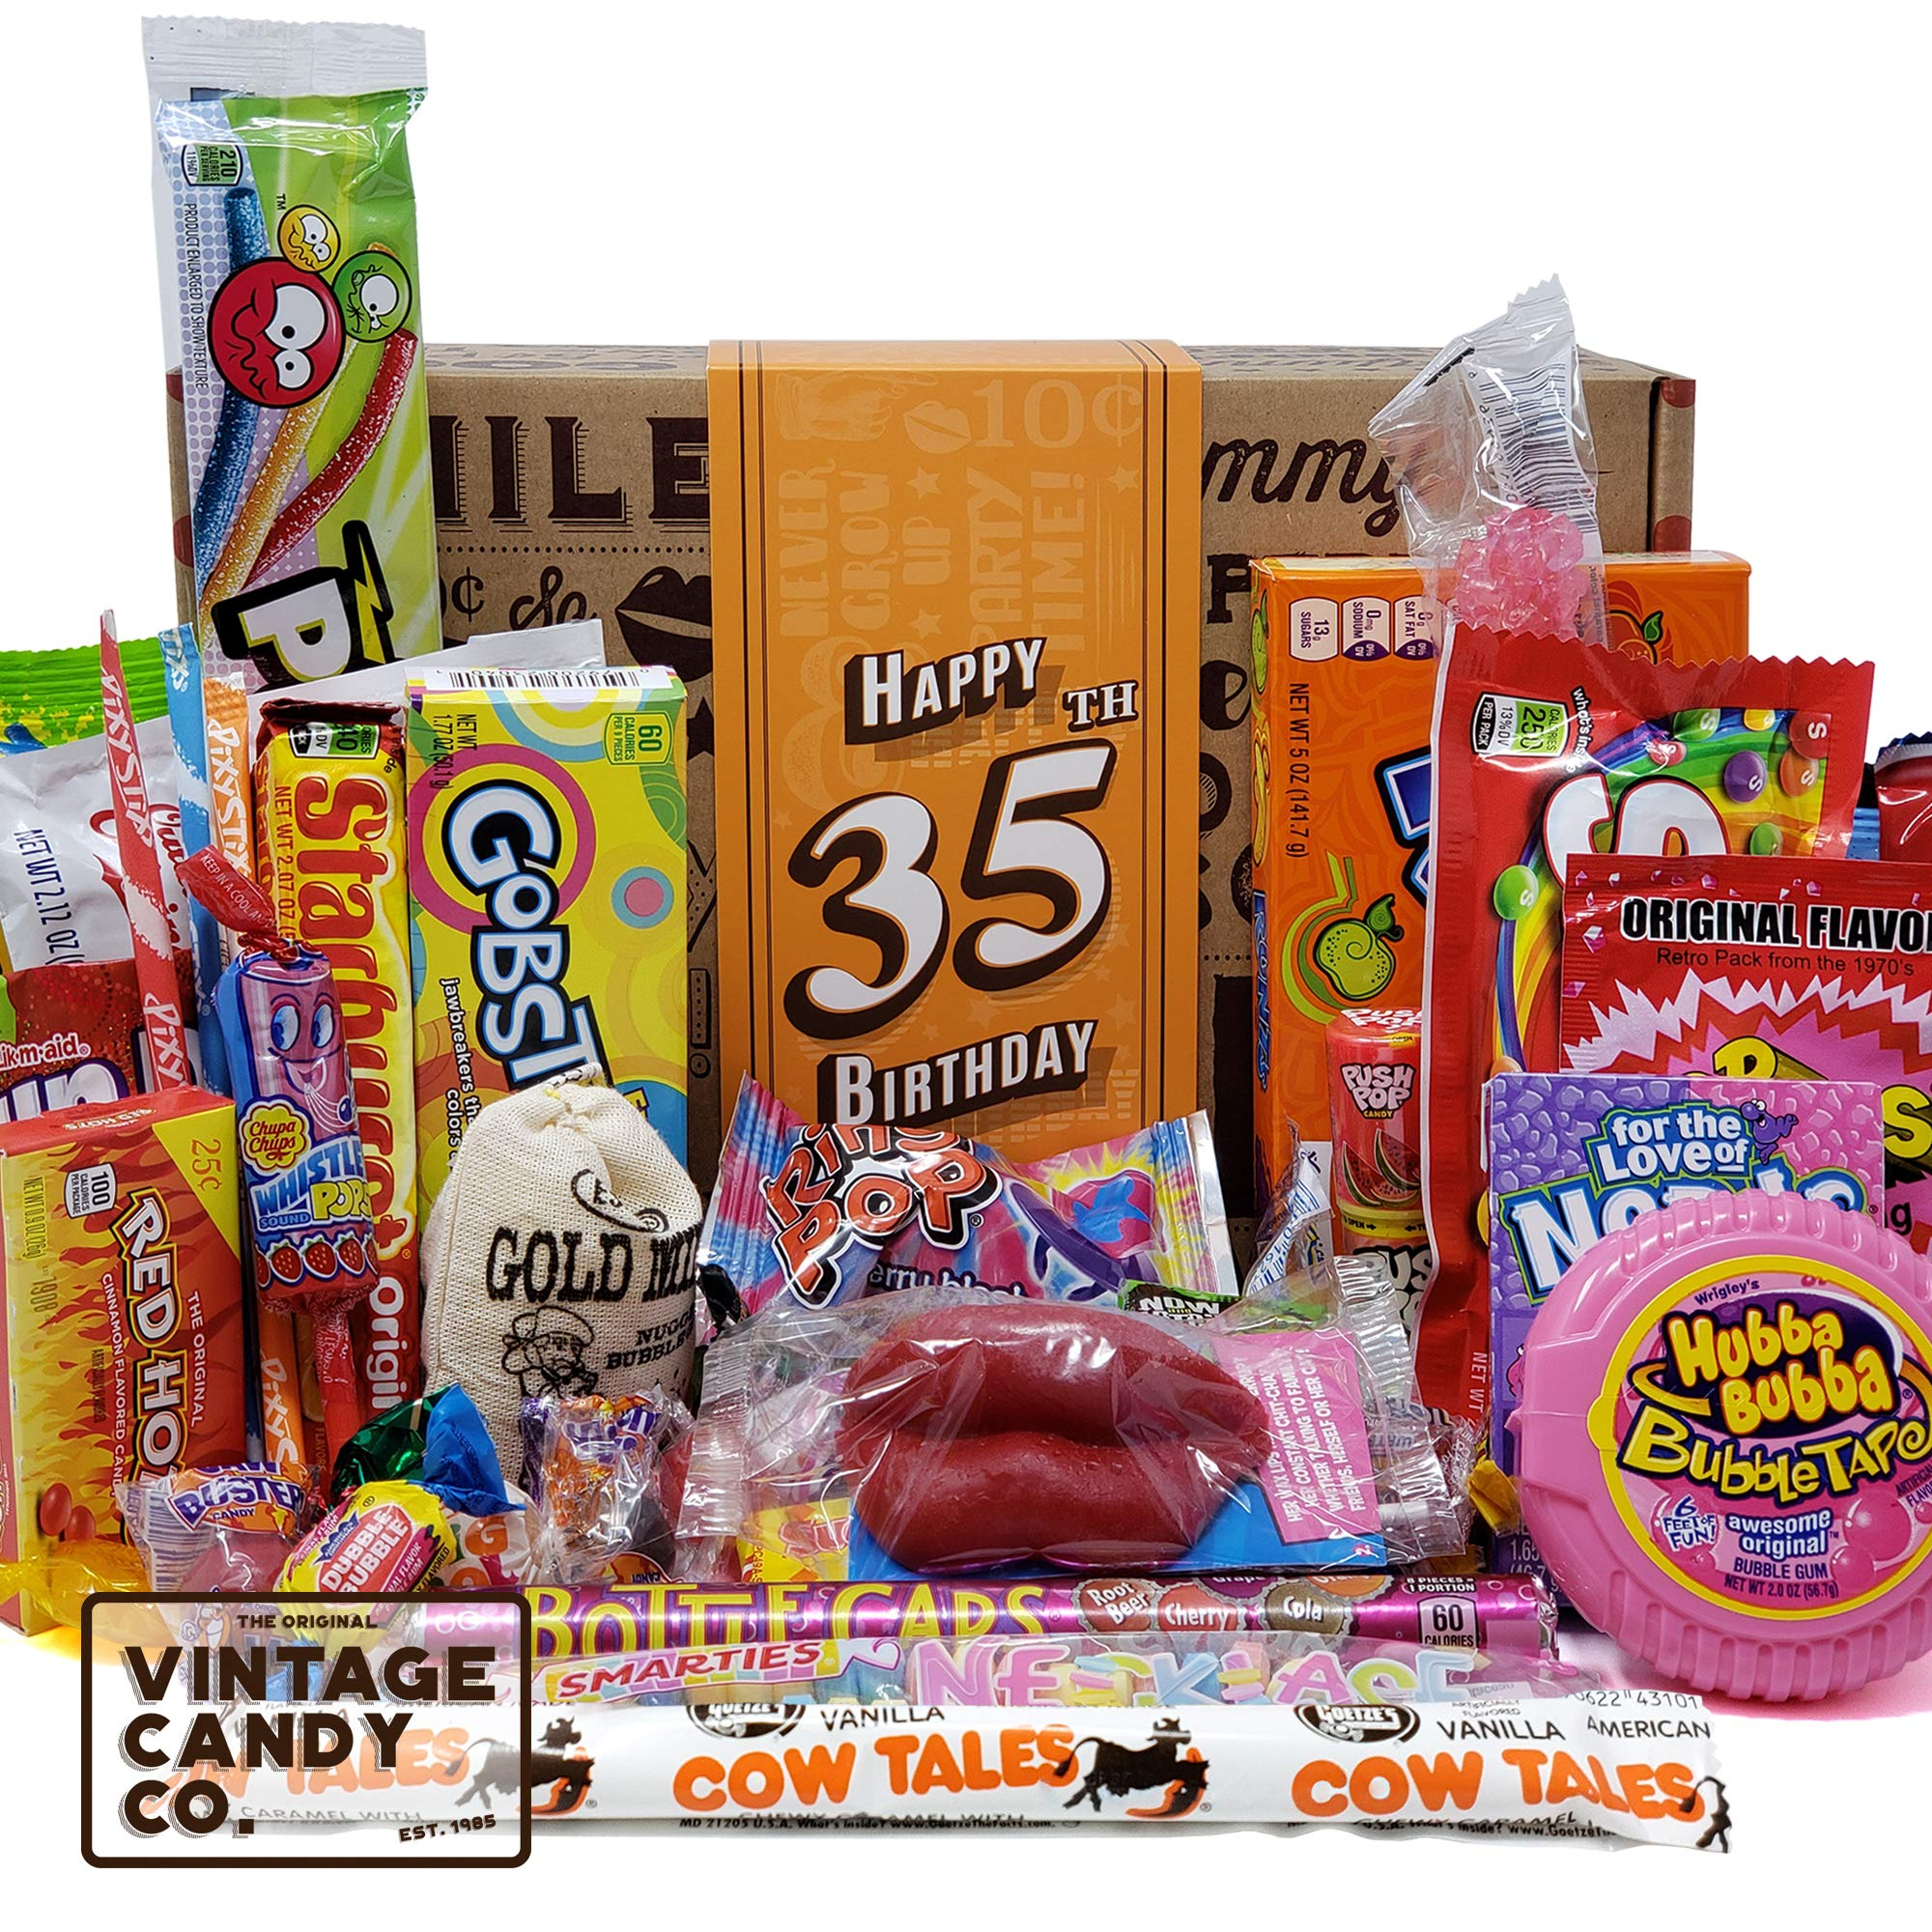 VINTAGE CANDY CO. 35TH BIRTHDAY RETRO CANDY GIFT BOX - 1984 Decade Childhood Nostalgic Candies - Fun Funny Gag Gift Basket - Milestone 35 Birthday PERFECT For THIRTY FIVE Year Old Man | Woman by Vintage Candy Co.